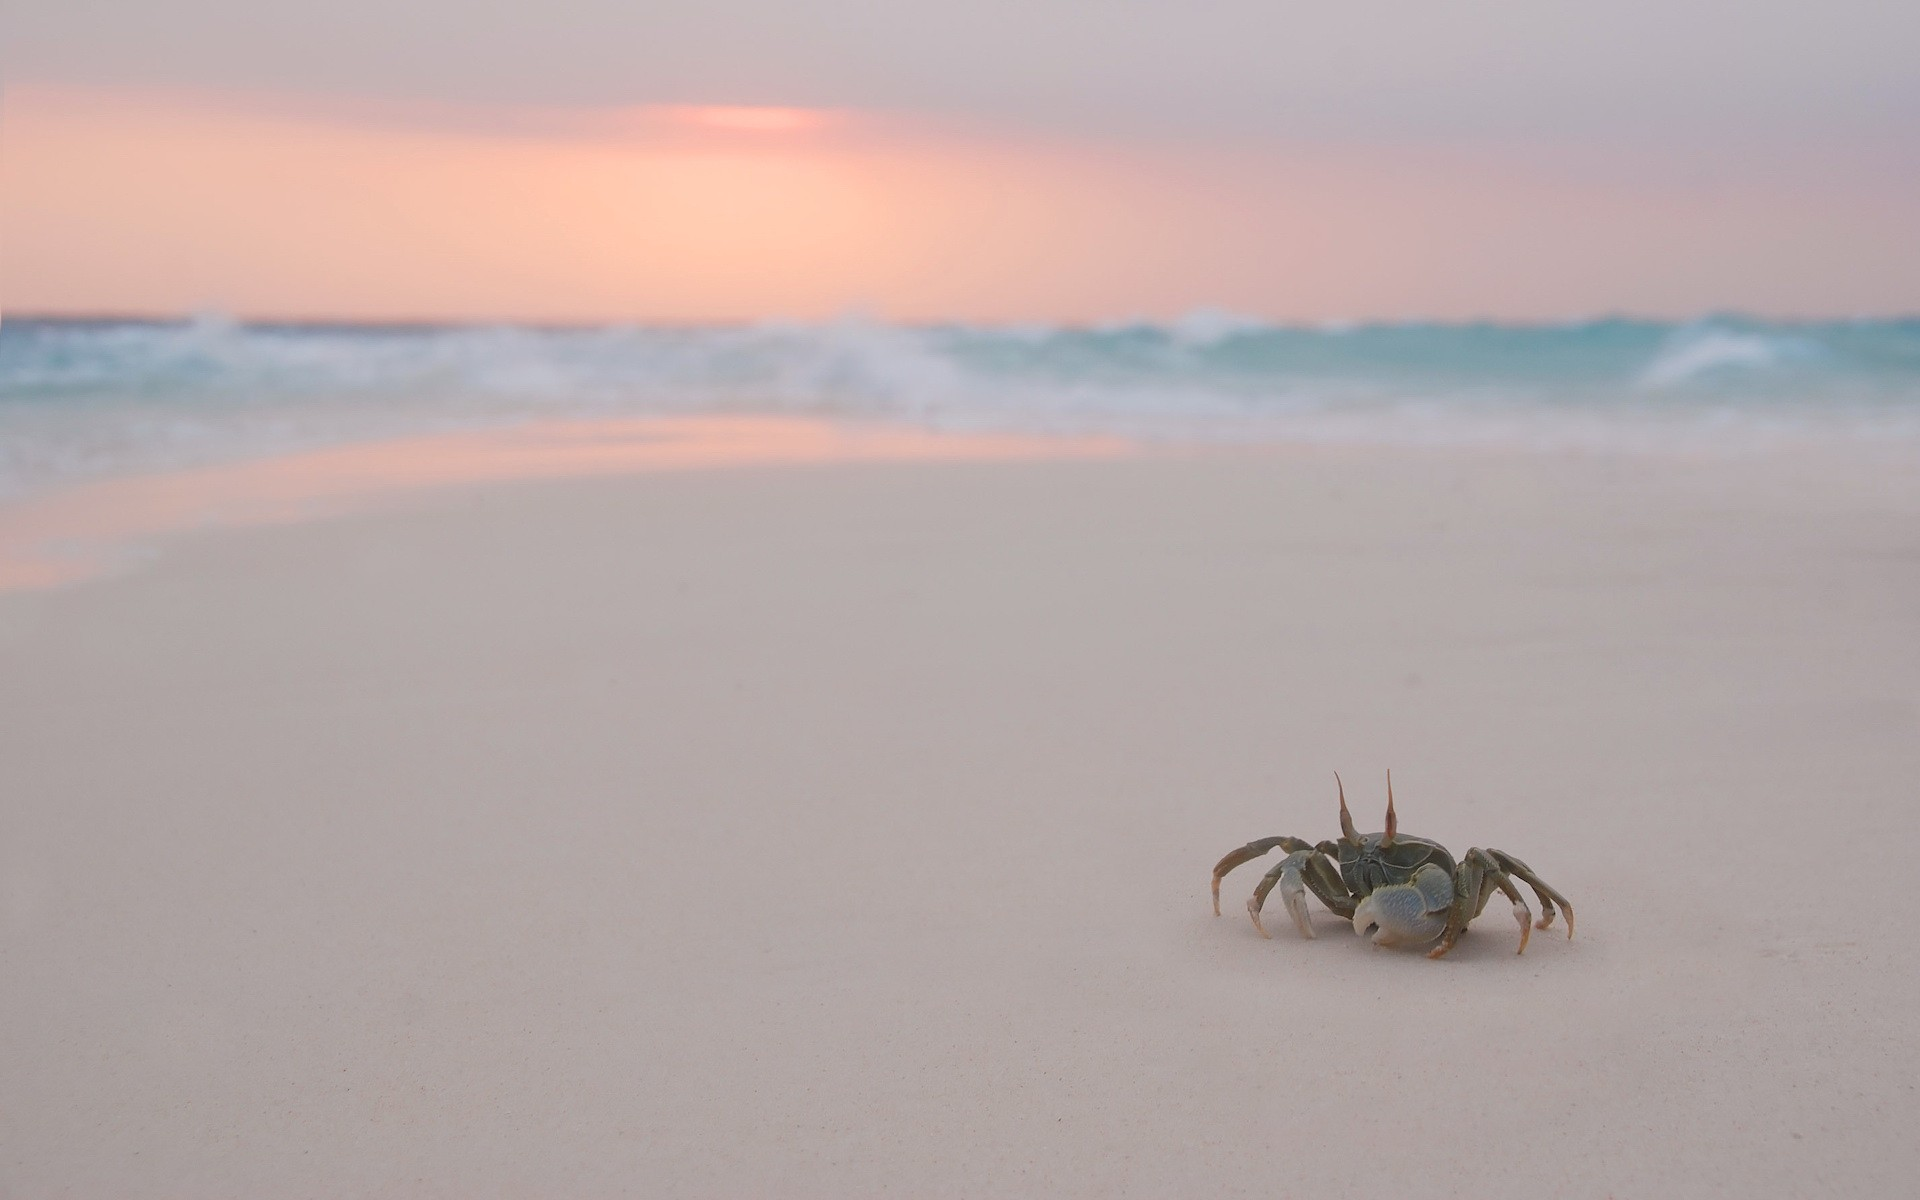 Crab-Walking-On-A-Beach-Wallpaper